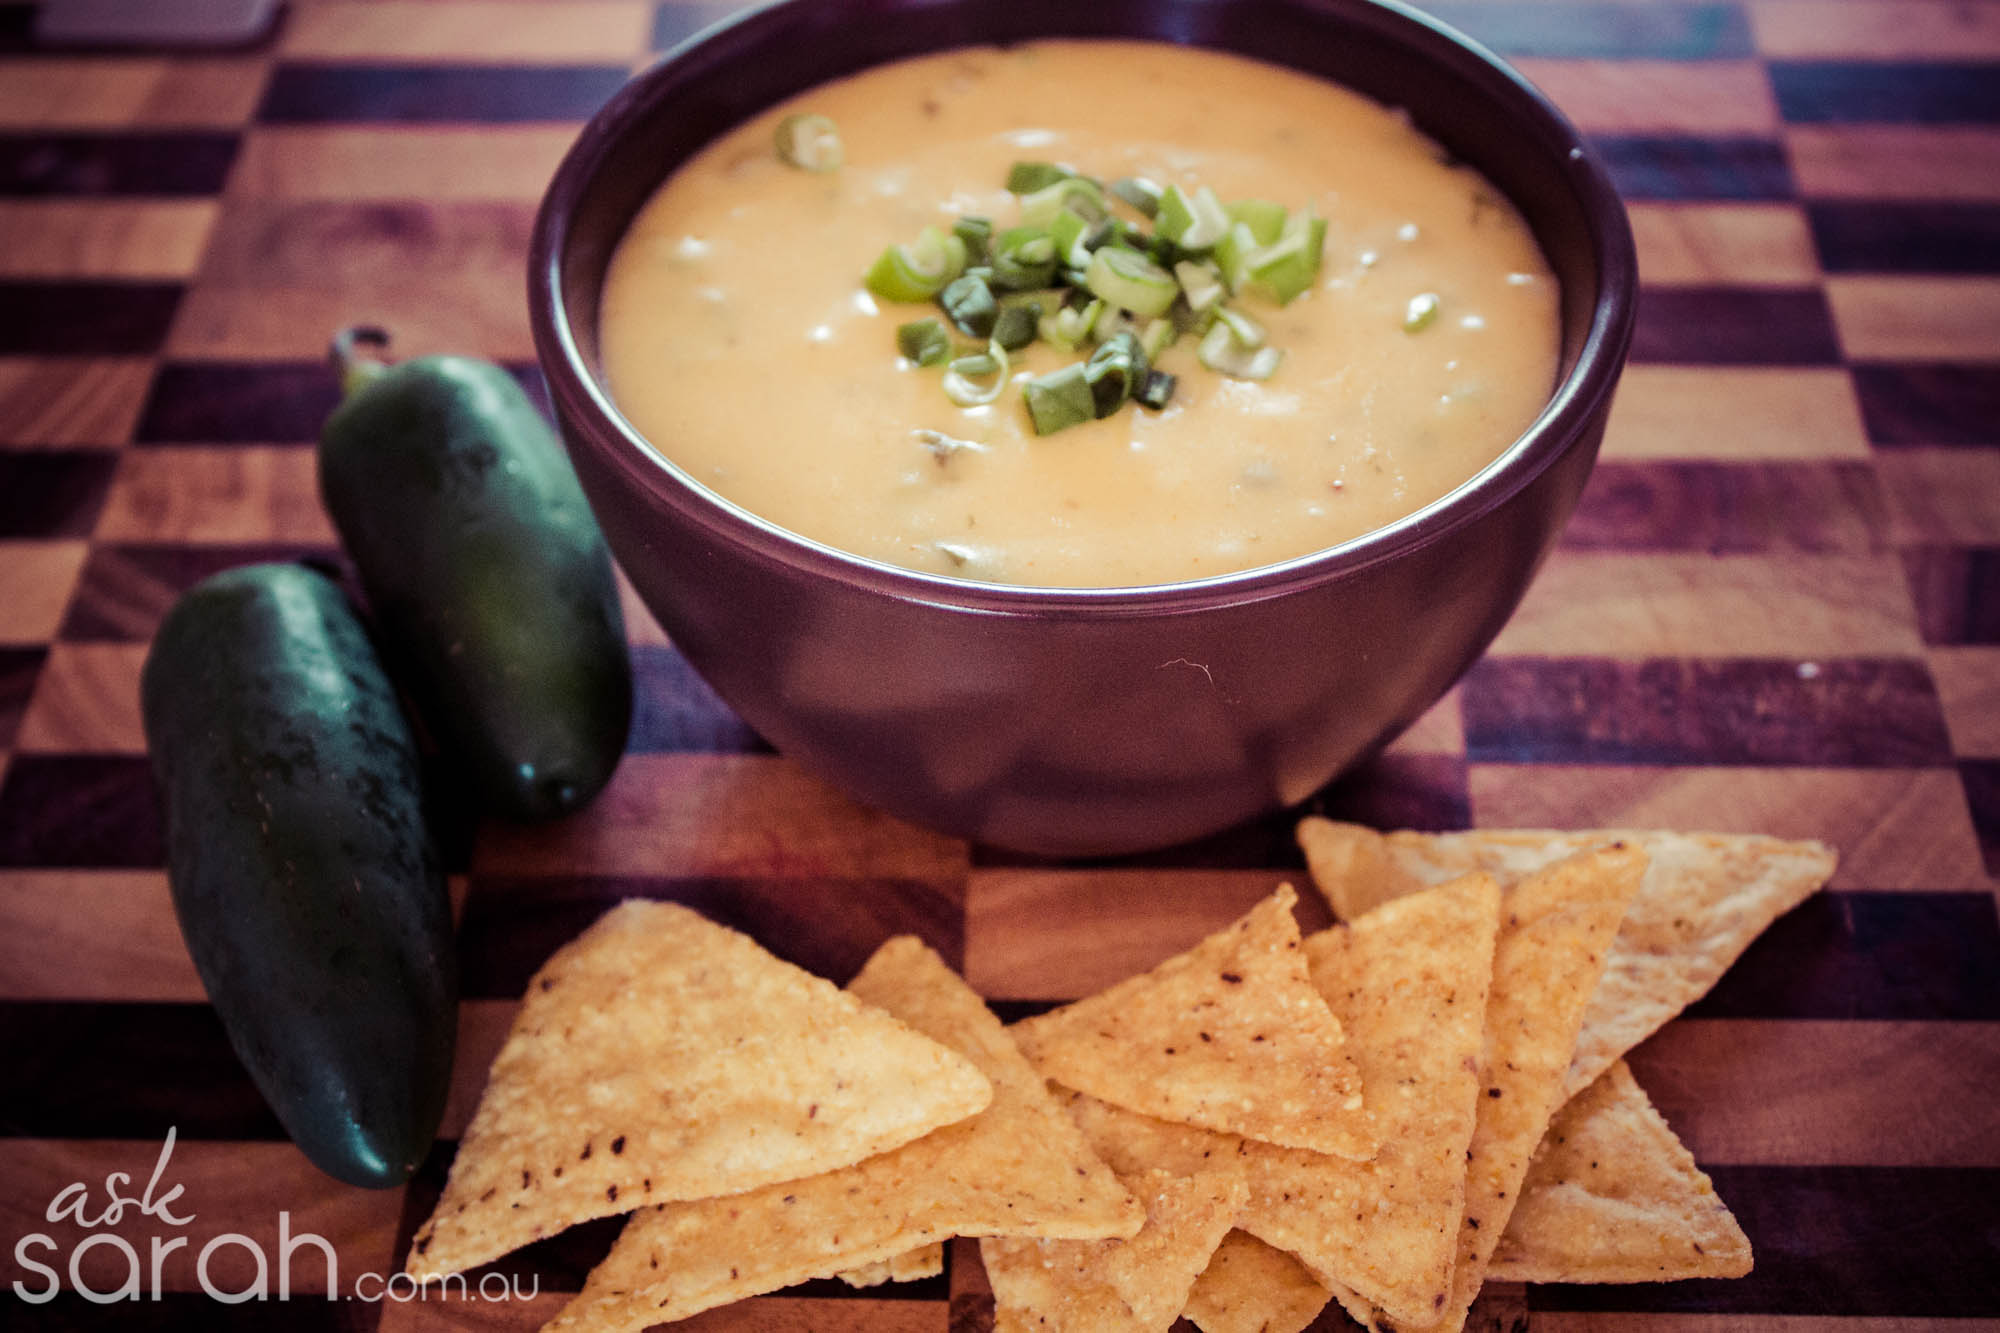 Recipe: Nacho Cheese Sauce or Dip